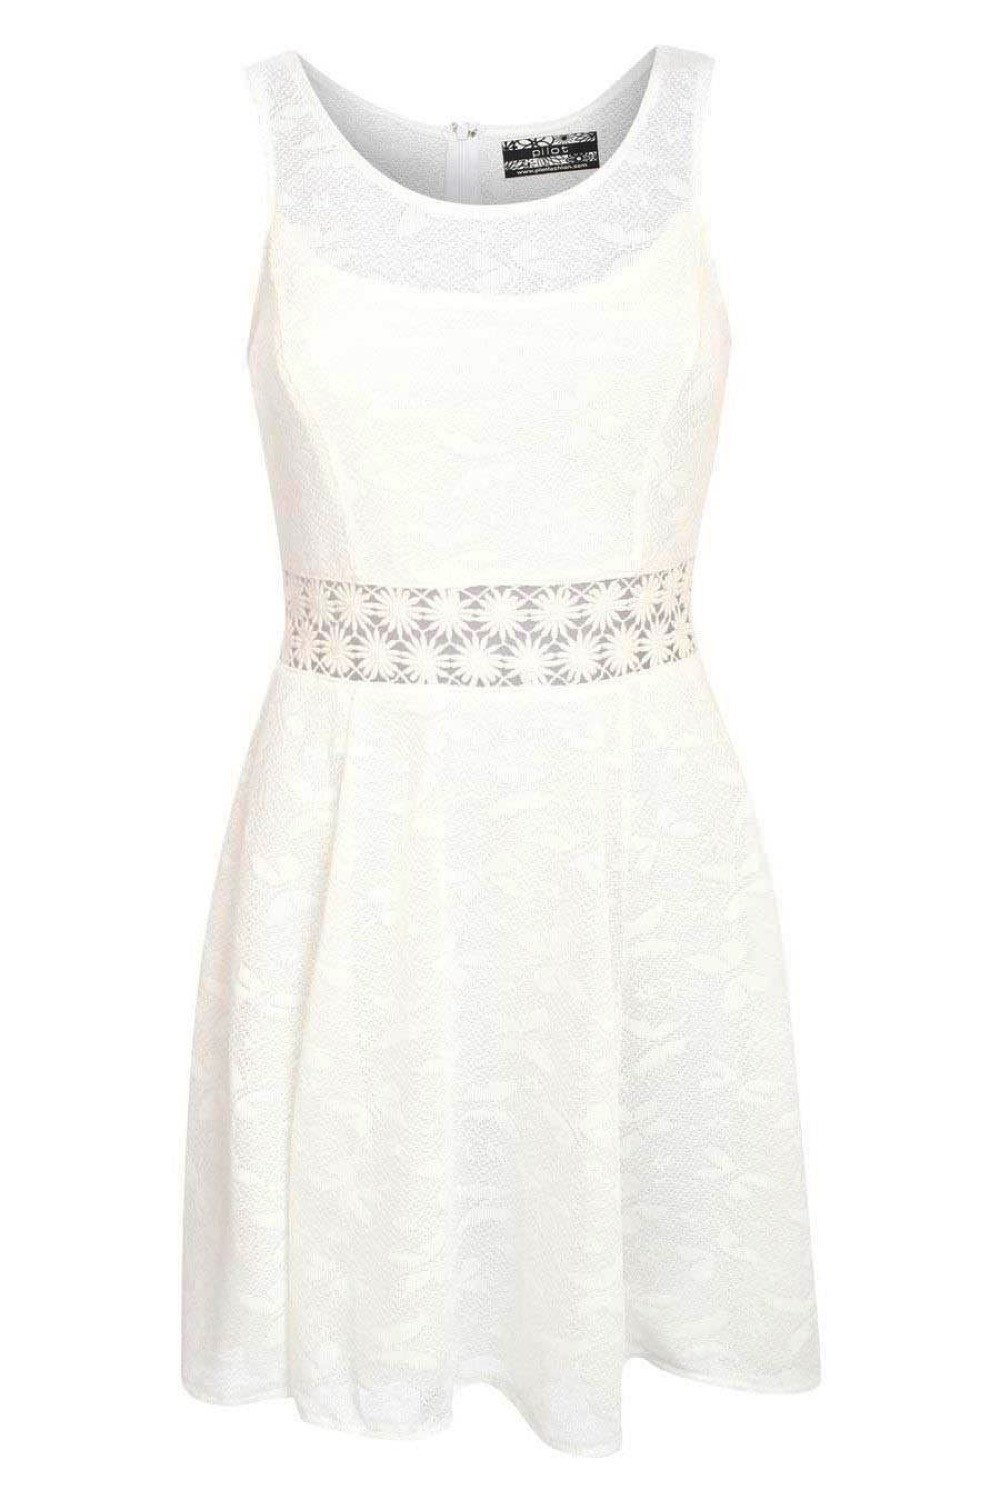 Sleeveless Butterfly Crochet Trim Waistband Skater Dress in White FRONT